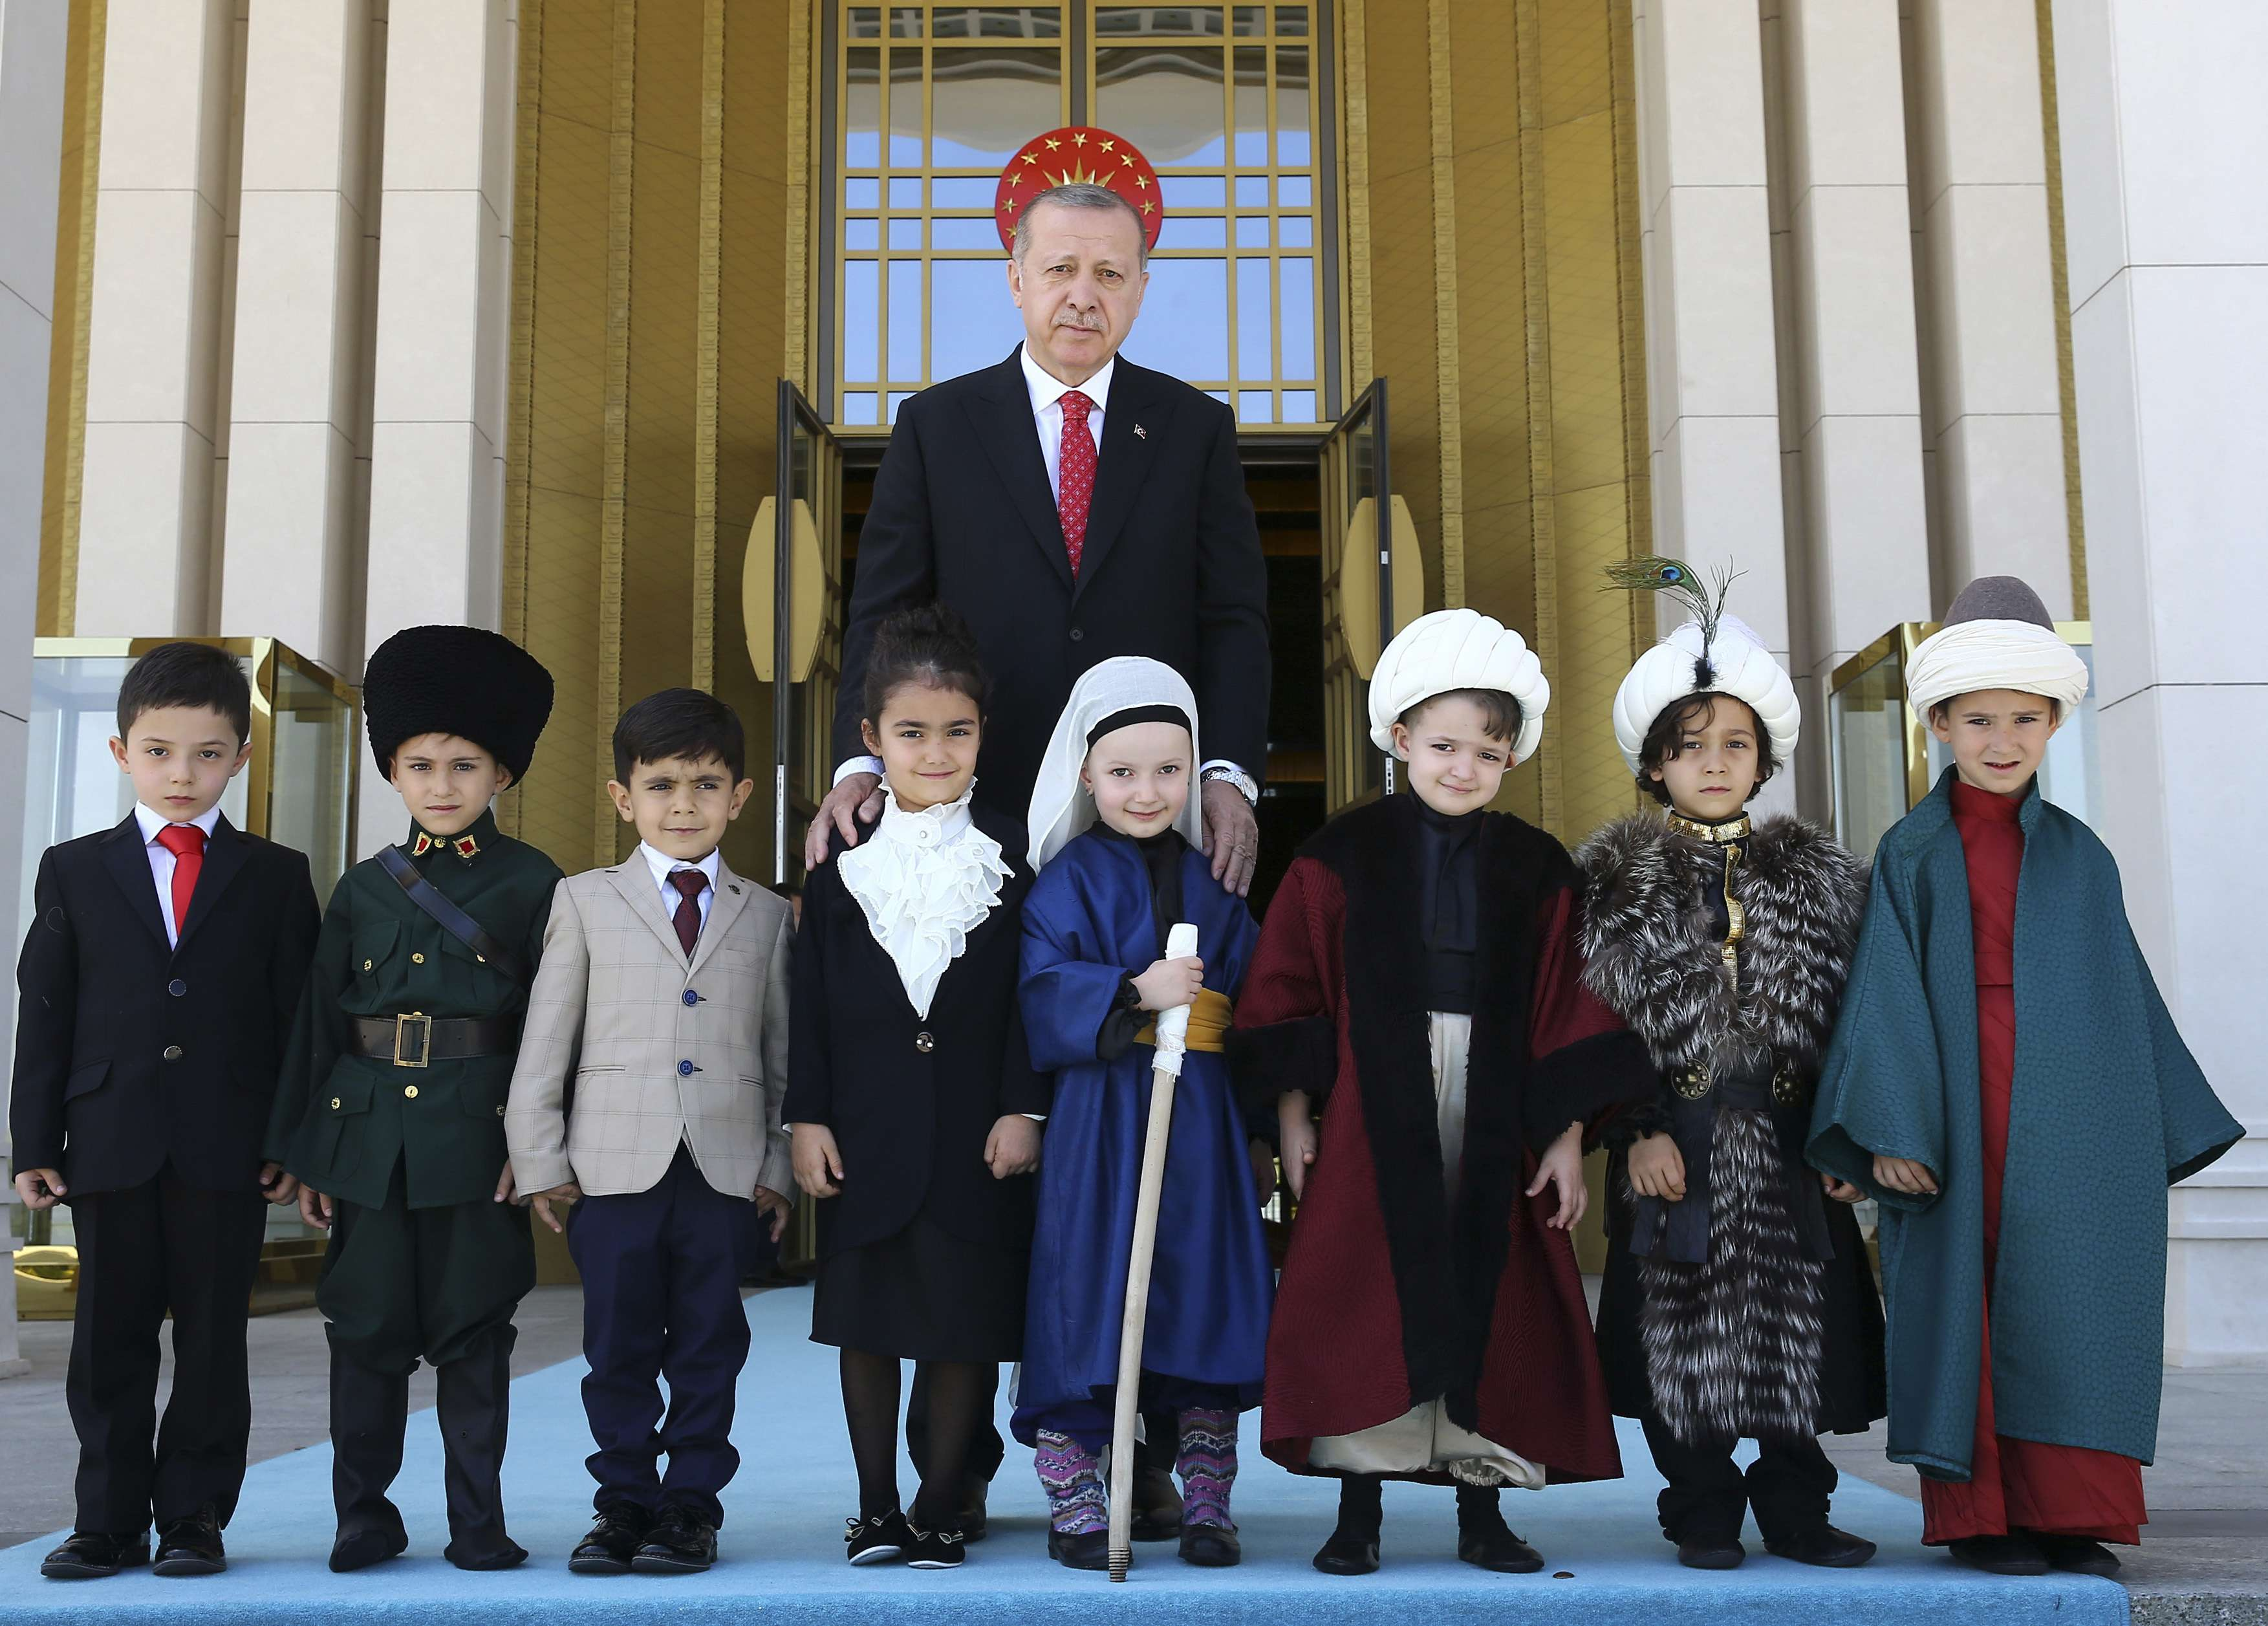 One-man rule. Turkish President Recep Tayyip Erdogan (C) poses for photographs with pupils, dressed in traditional costume, during a school visit at the Presidential Palace. (AP)